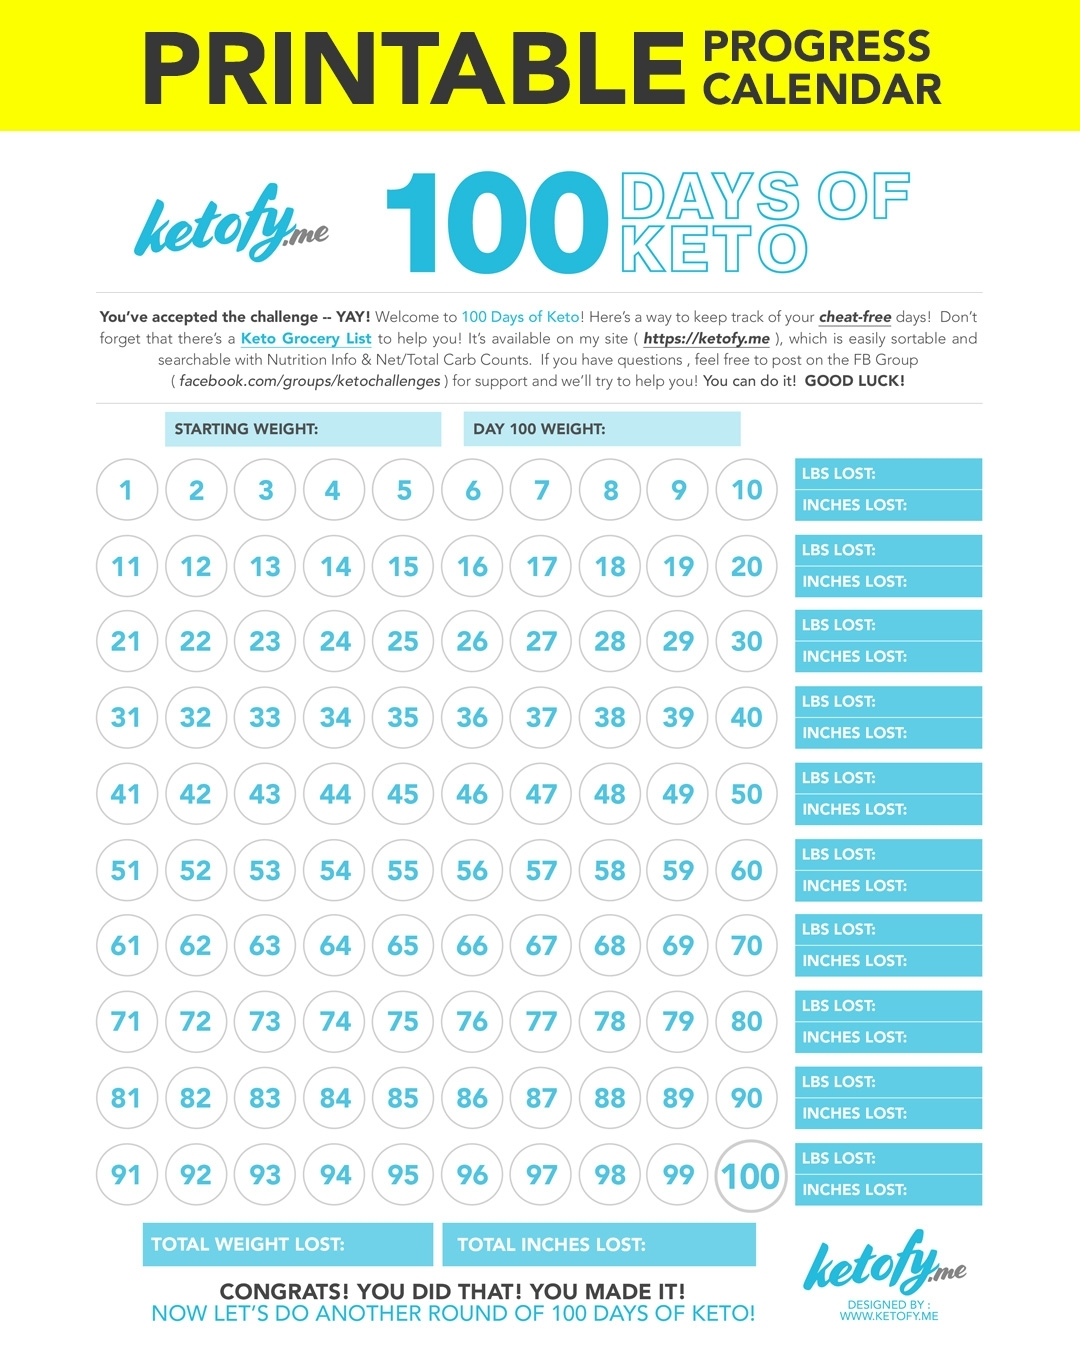 Keto ~ Fy Me | Cut Carbs, Not Flavor! • 100 Days Of Keto Challenge throughout Calendar By Day With Printable